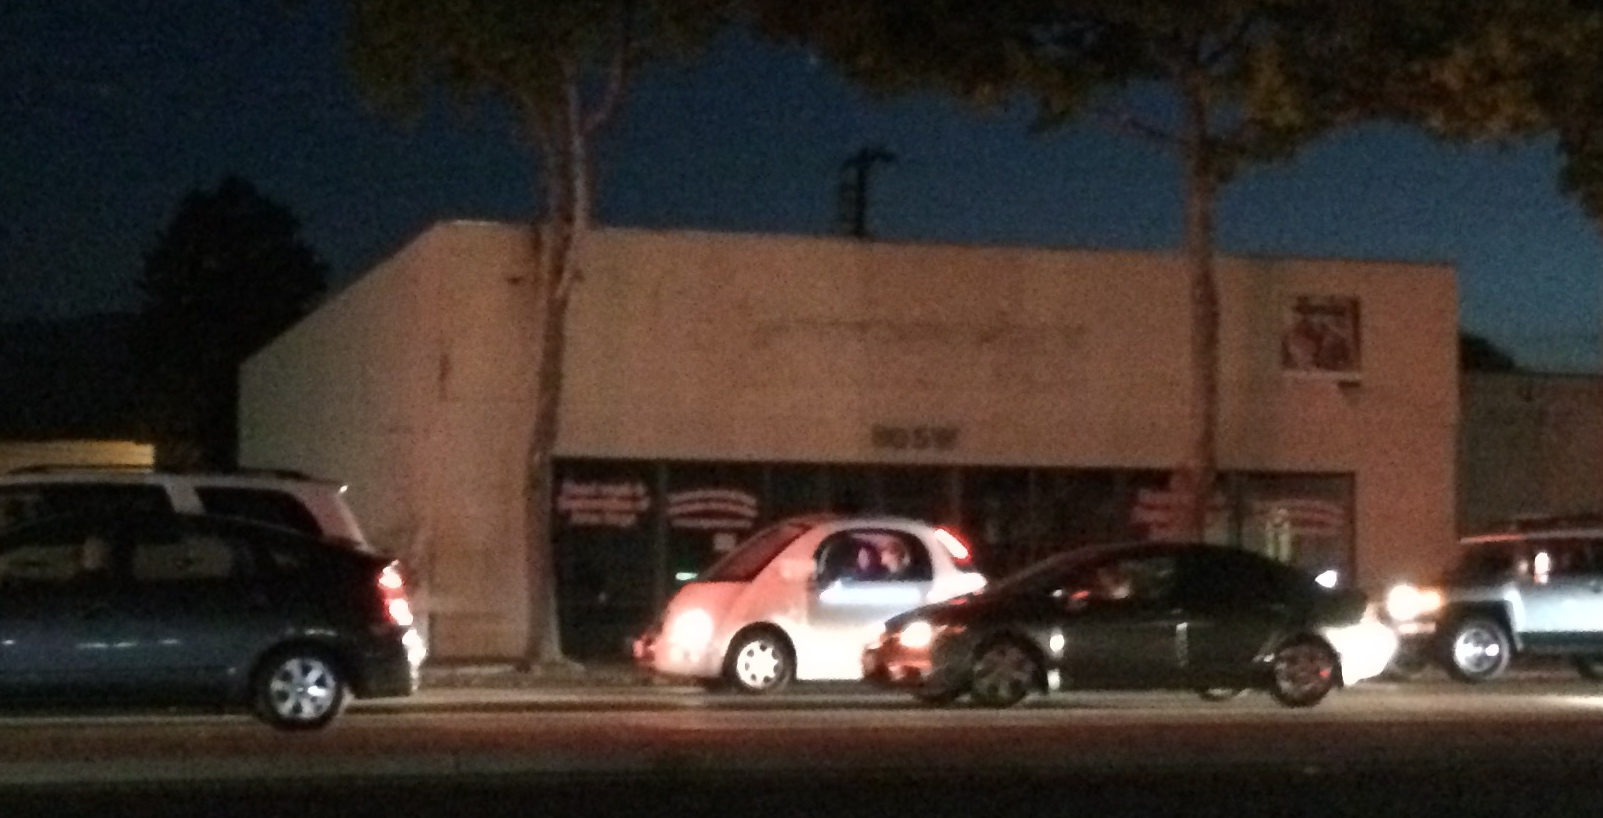 A Google self-driving car spotted in the bay area (Photo by: JOhn Rokos)